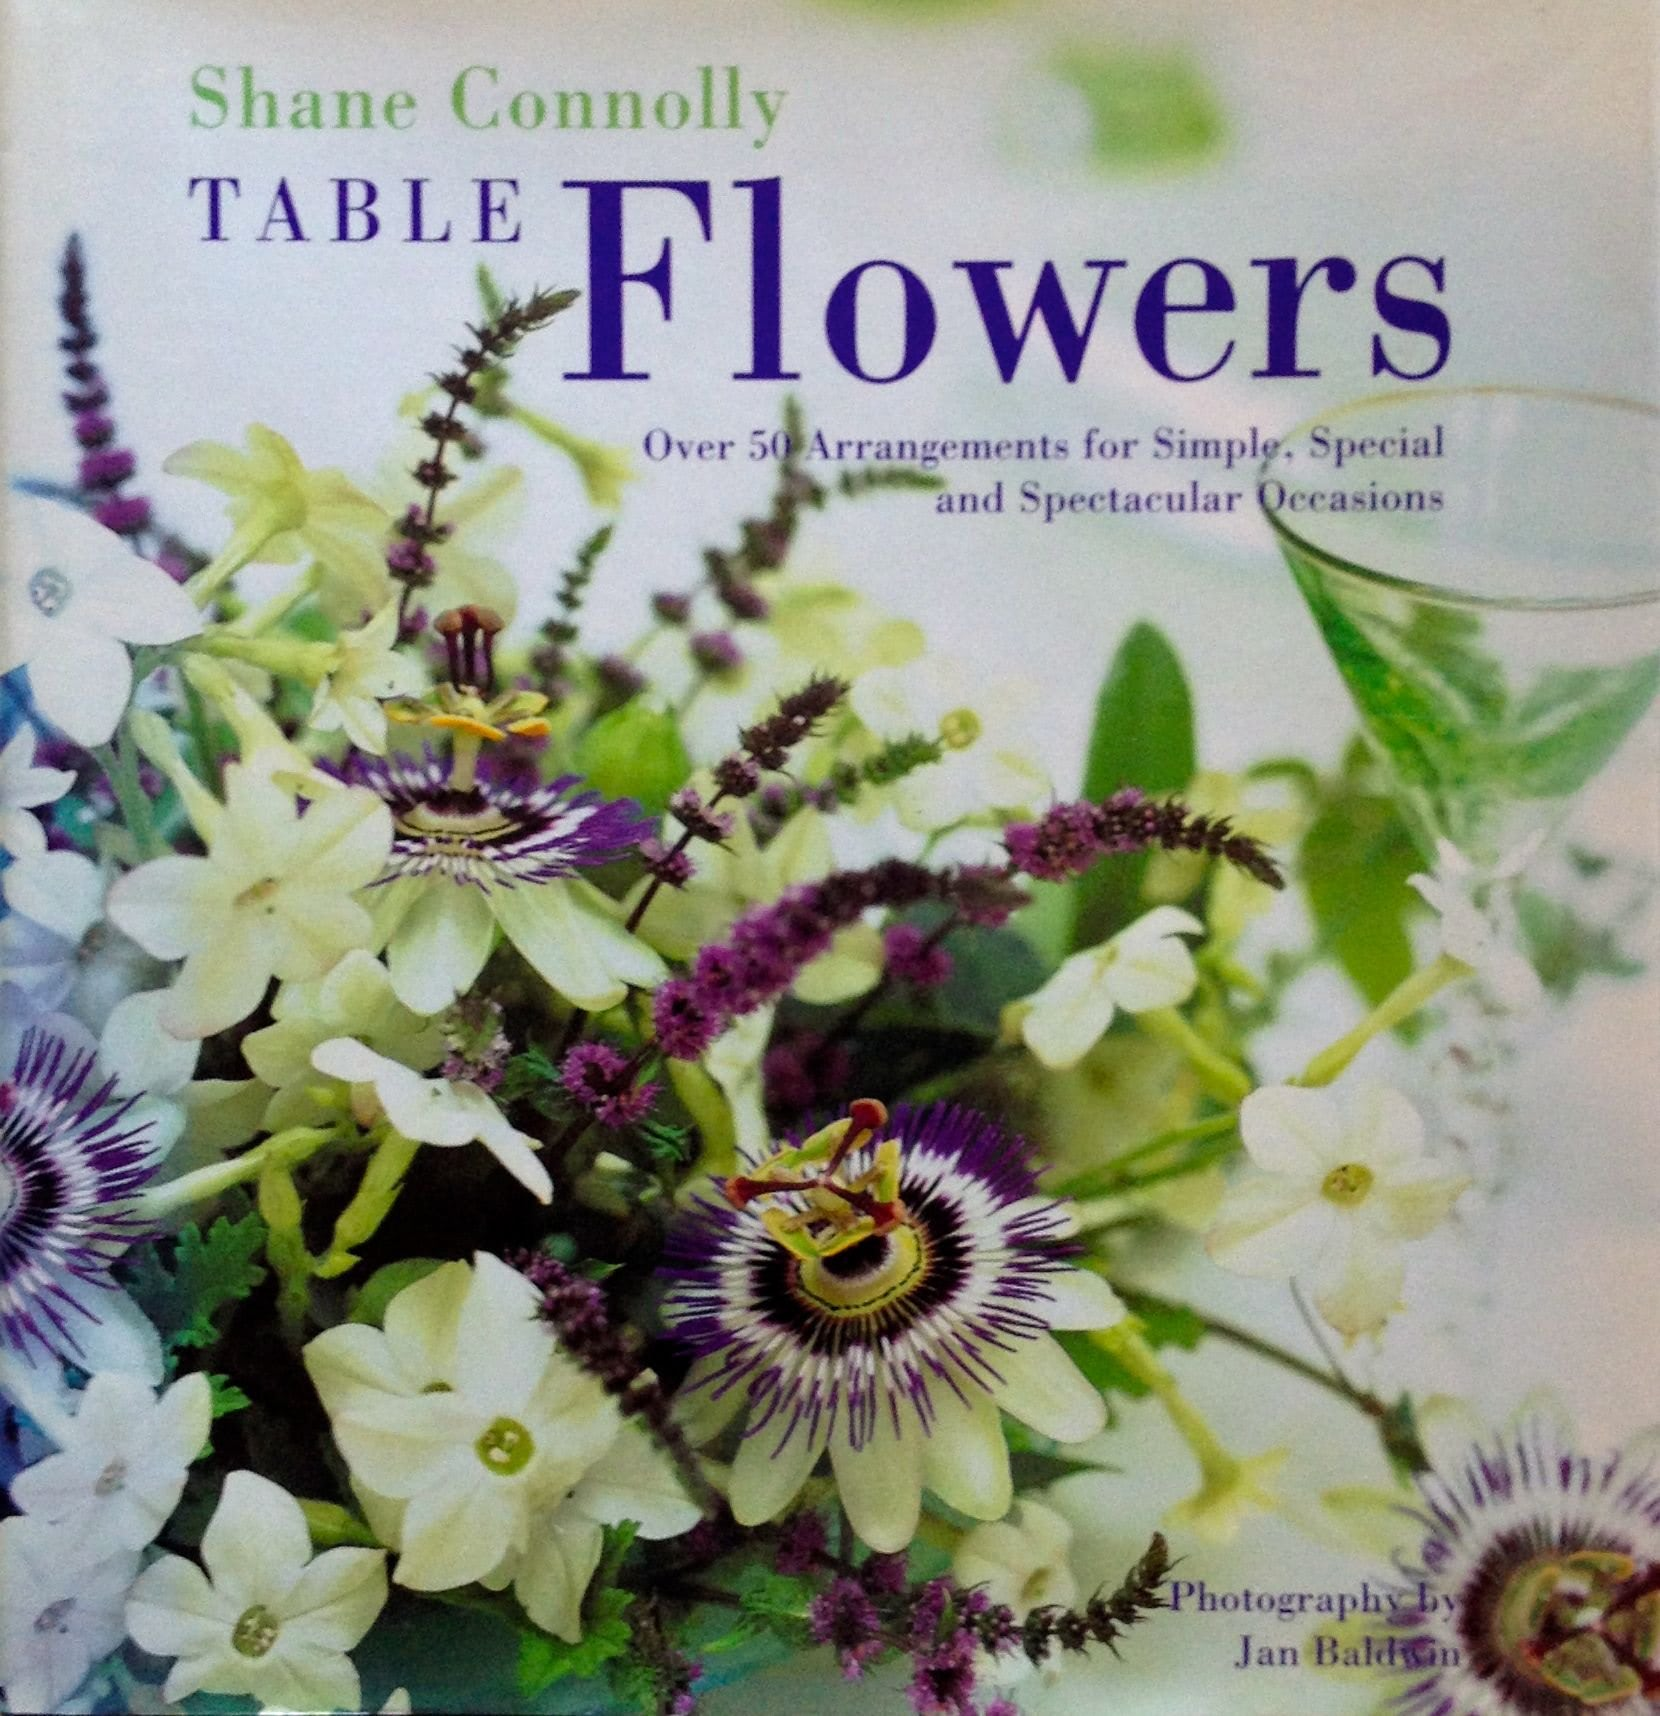 Table Flowers: Over 50 Arrangements for Simple, Special, and Spectacular Occasions by Shane Connolly